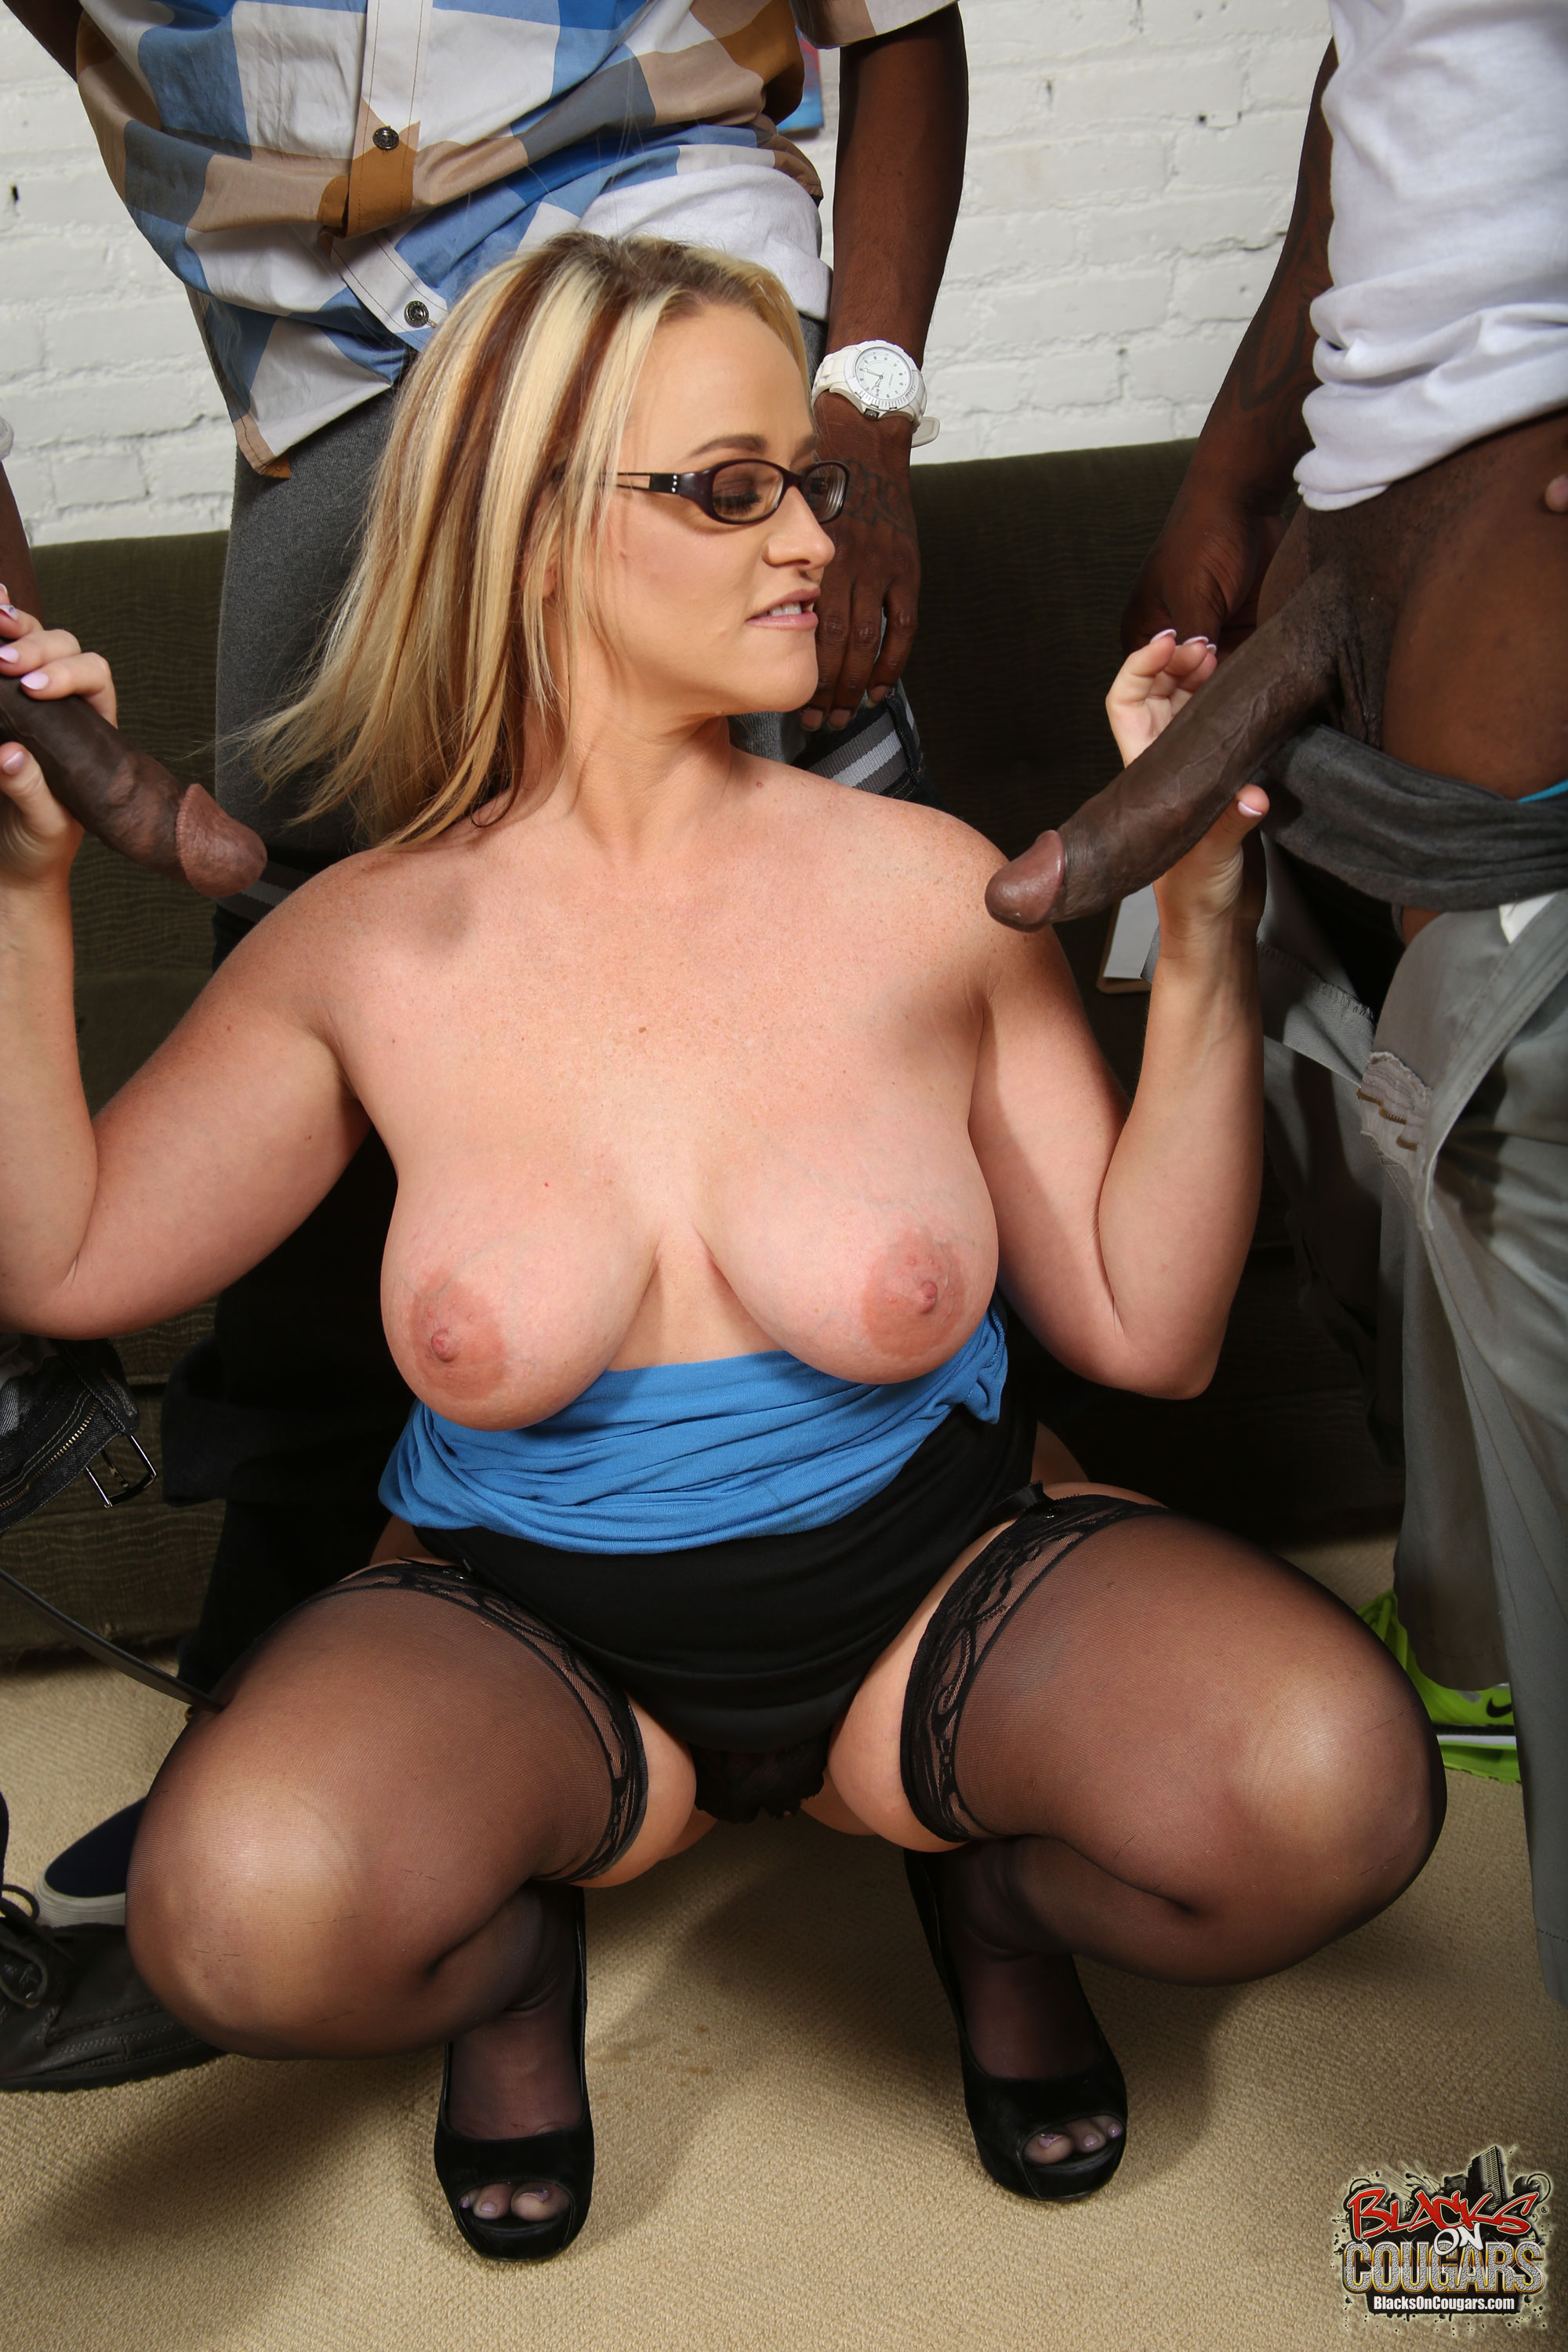 Busty blonde milf gangbanged by bunch of horny studs 2